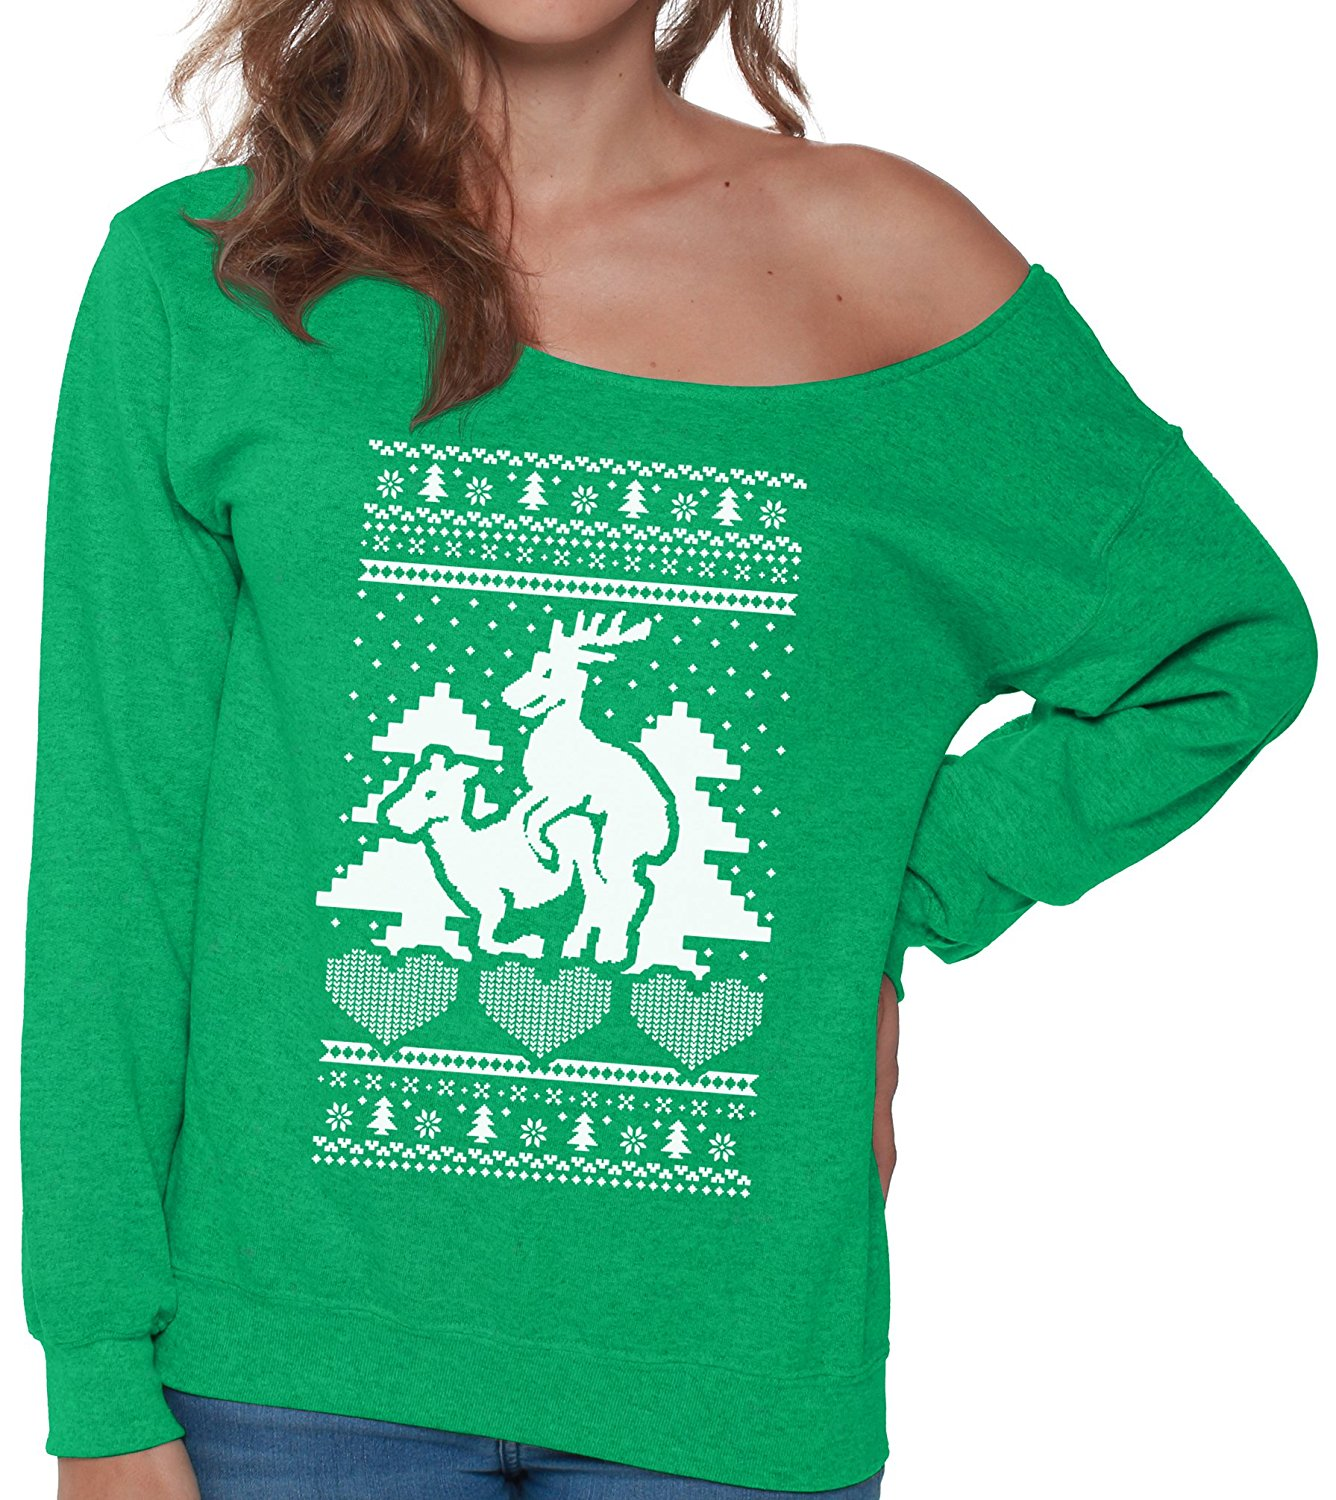 f668cb5be73c Pekatees Reindeer Humping Sweatshirt Humping Sweater Ugly Christmas Sweater  Off the Shoulder Xmas Sweatshirt